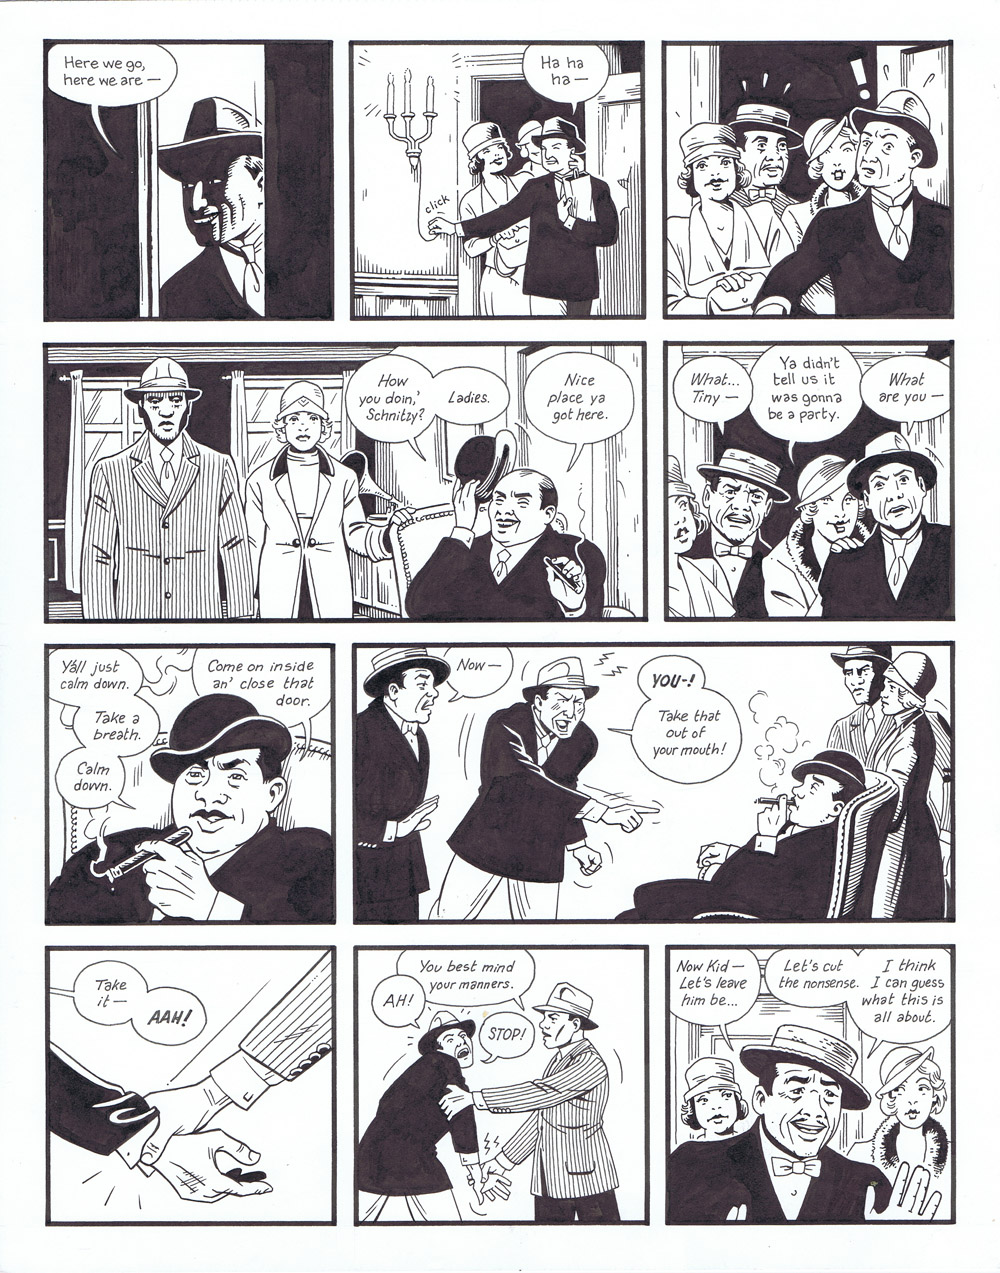 Berlin: Book 2 - page 198